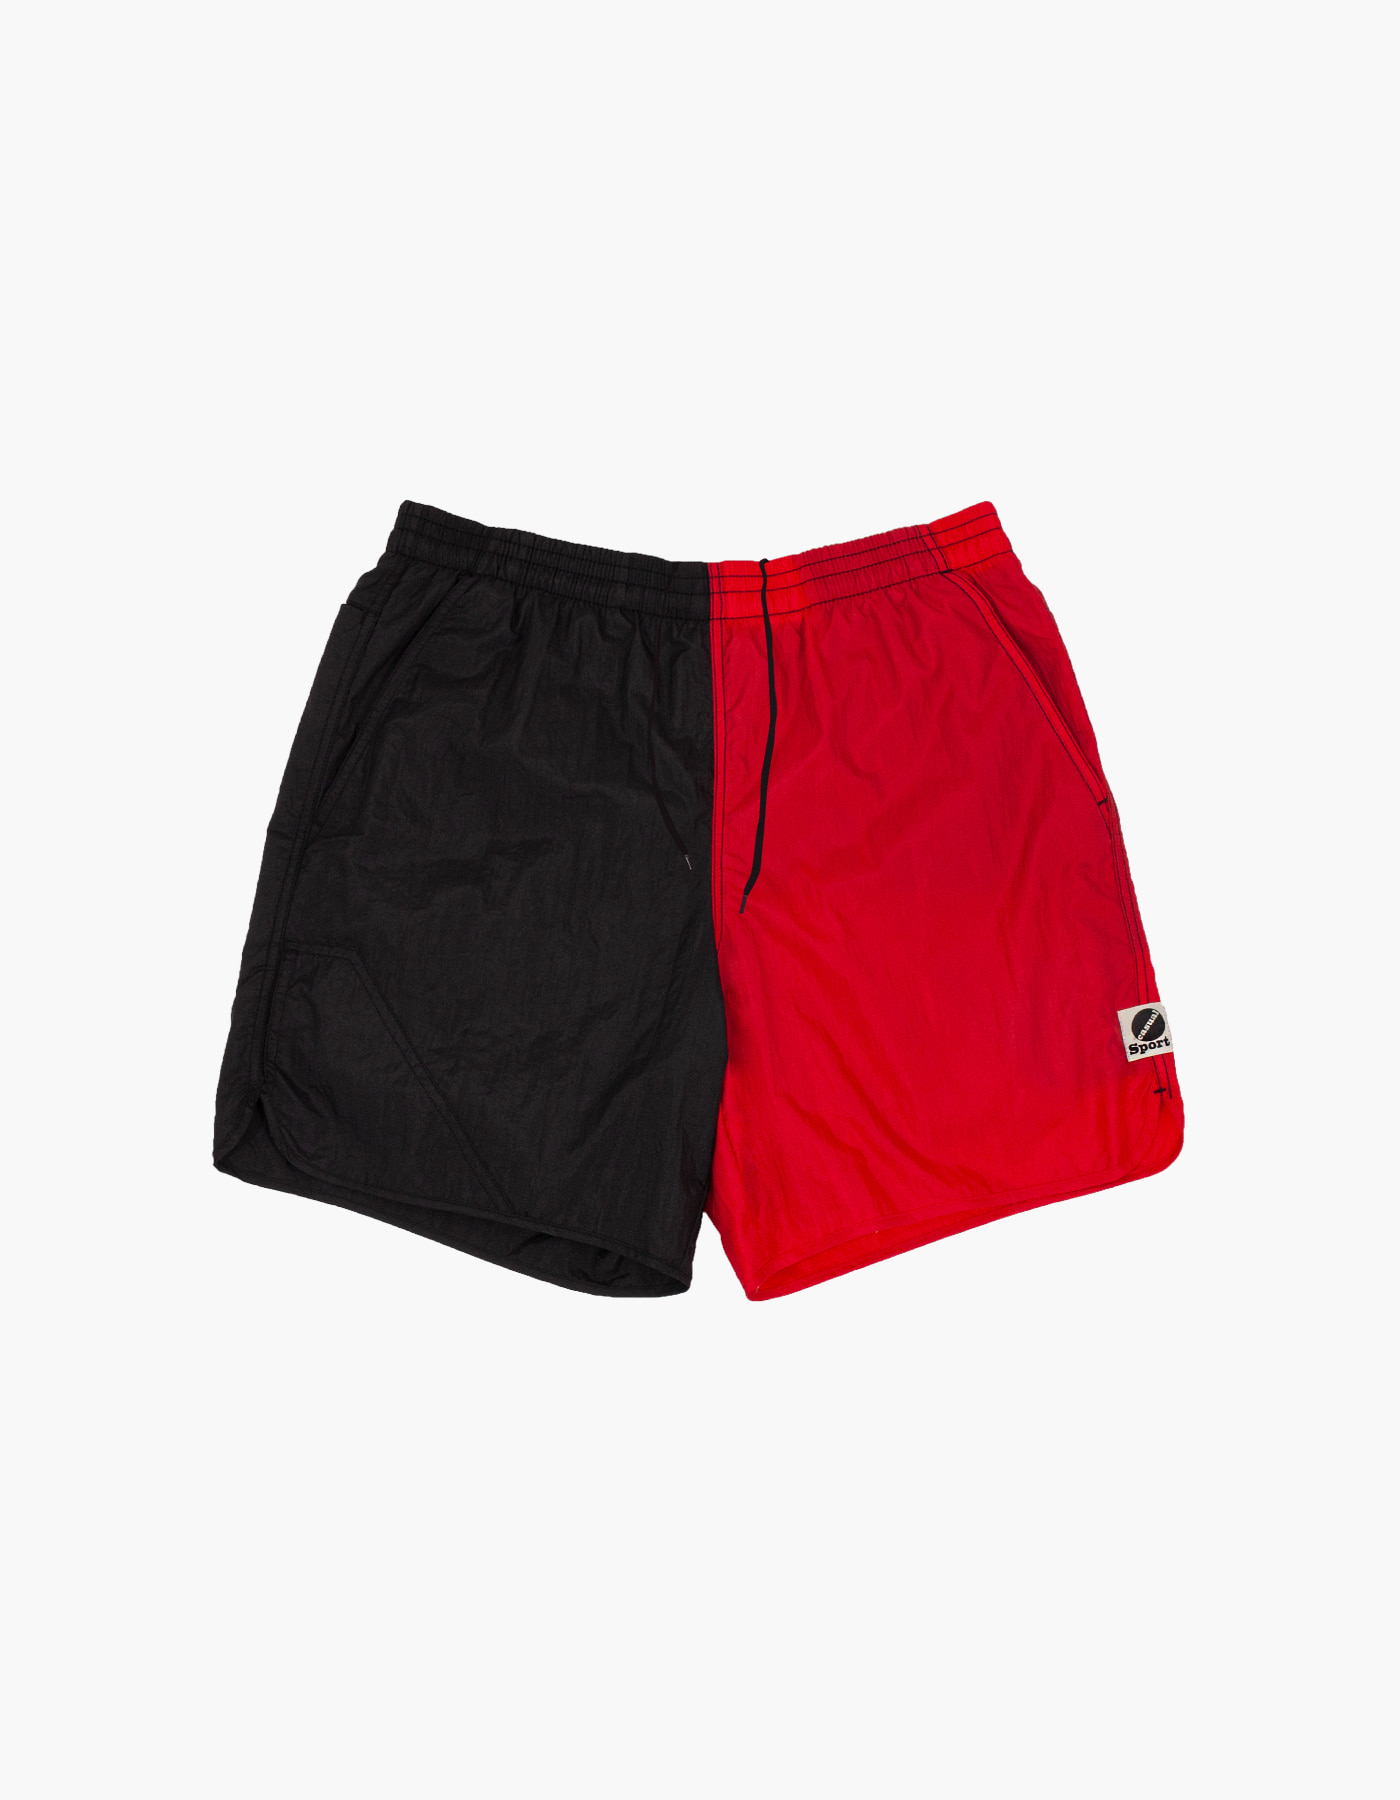 NYLON DIAMOND WASHER SHORTS / BLACK-RED